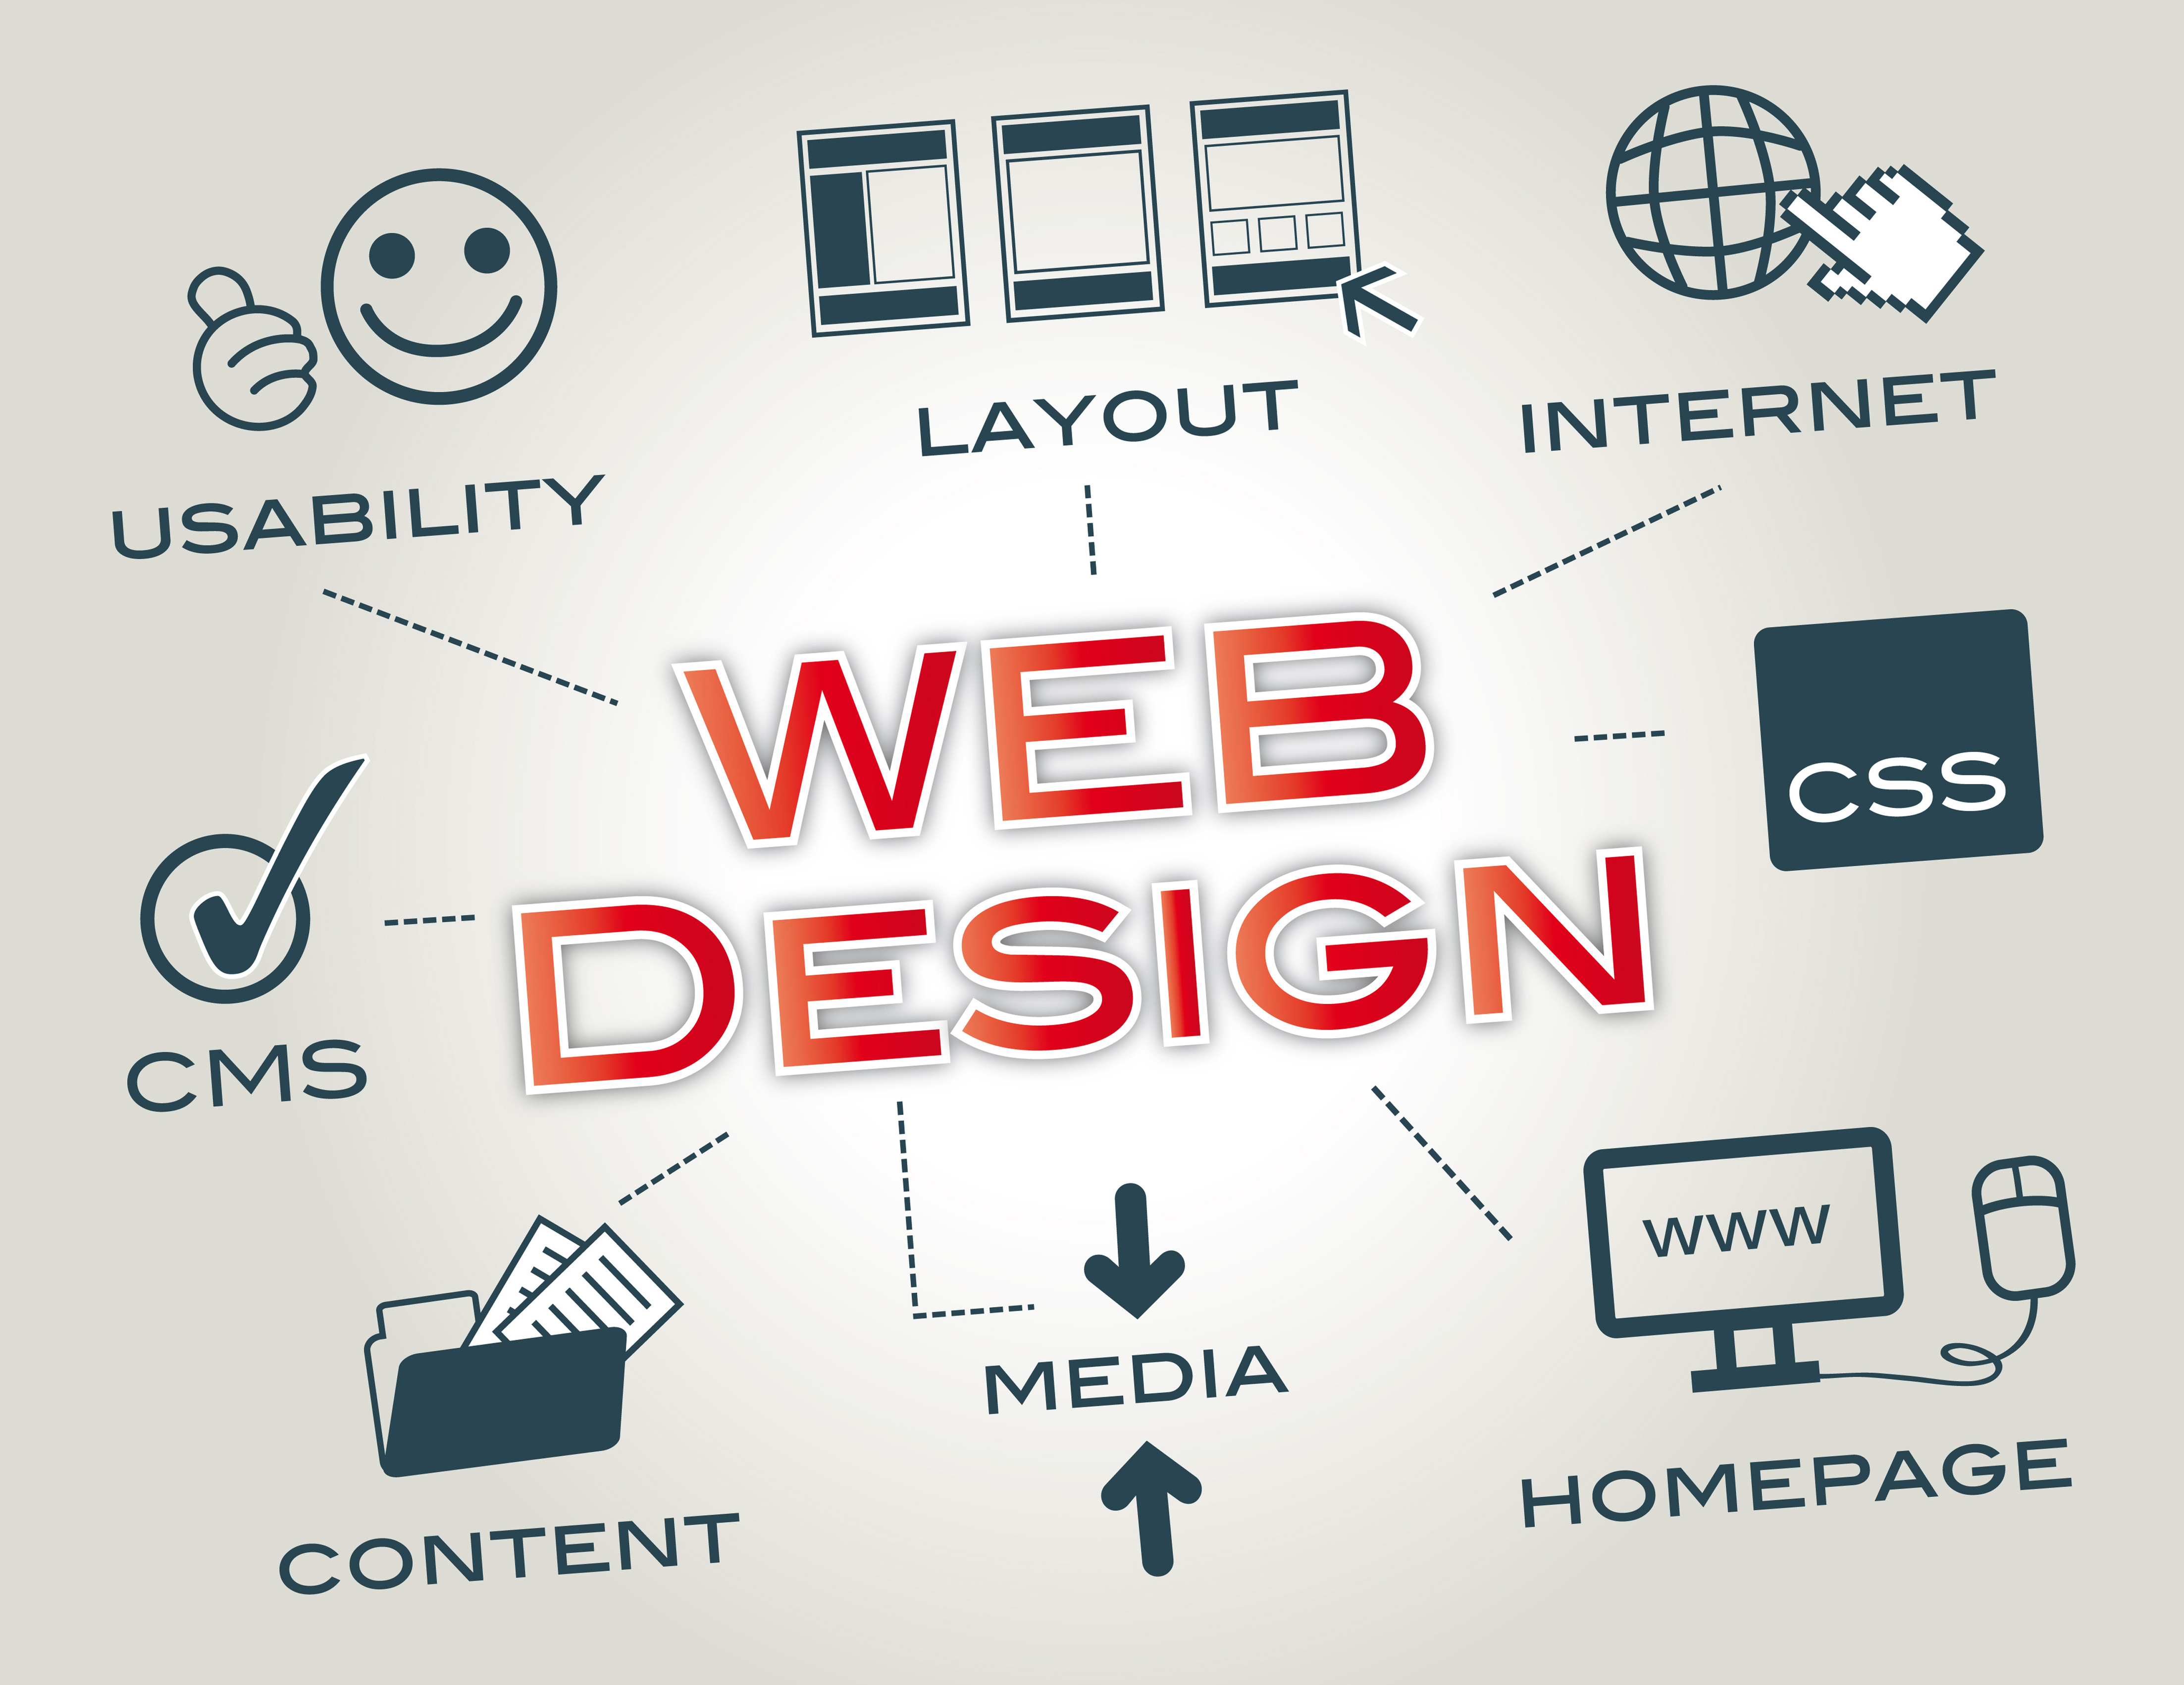 The many part of Web Design